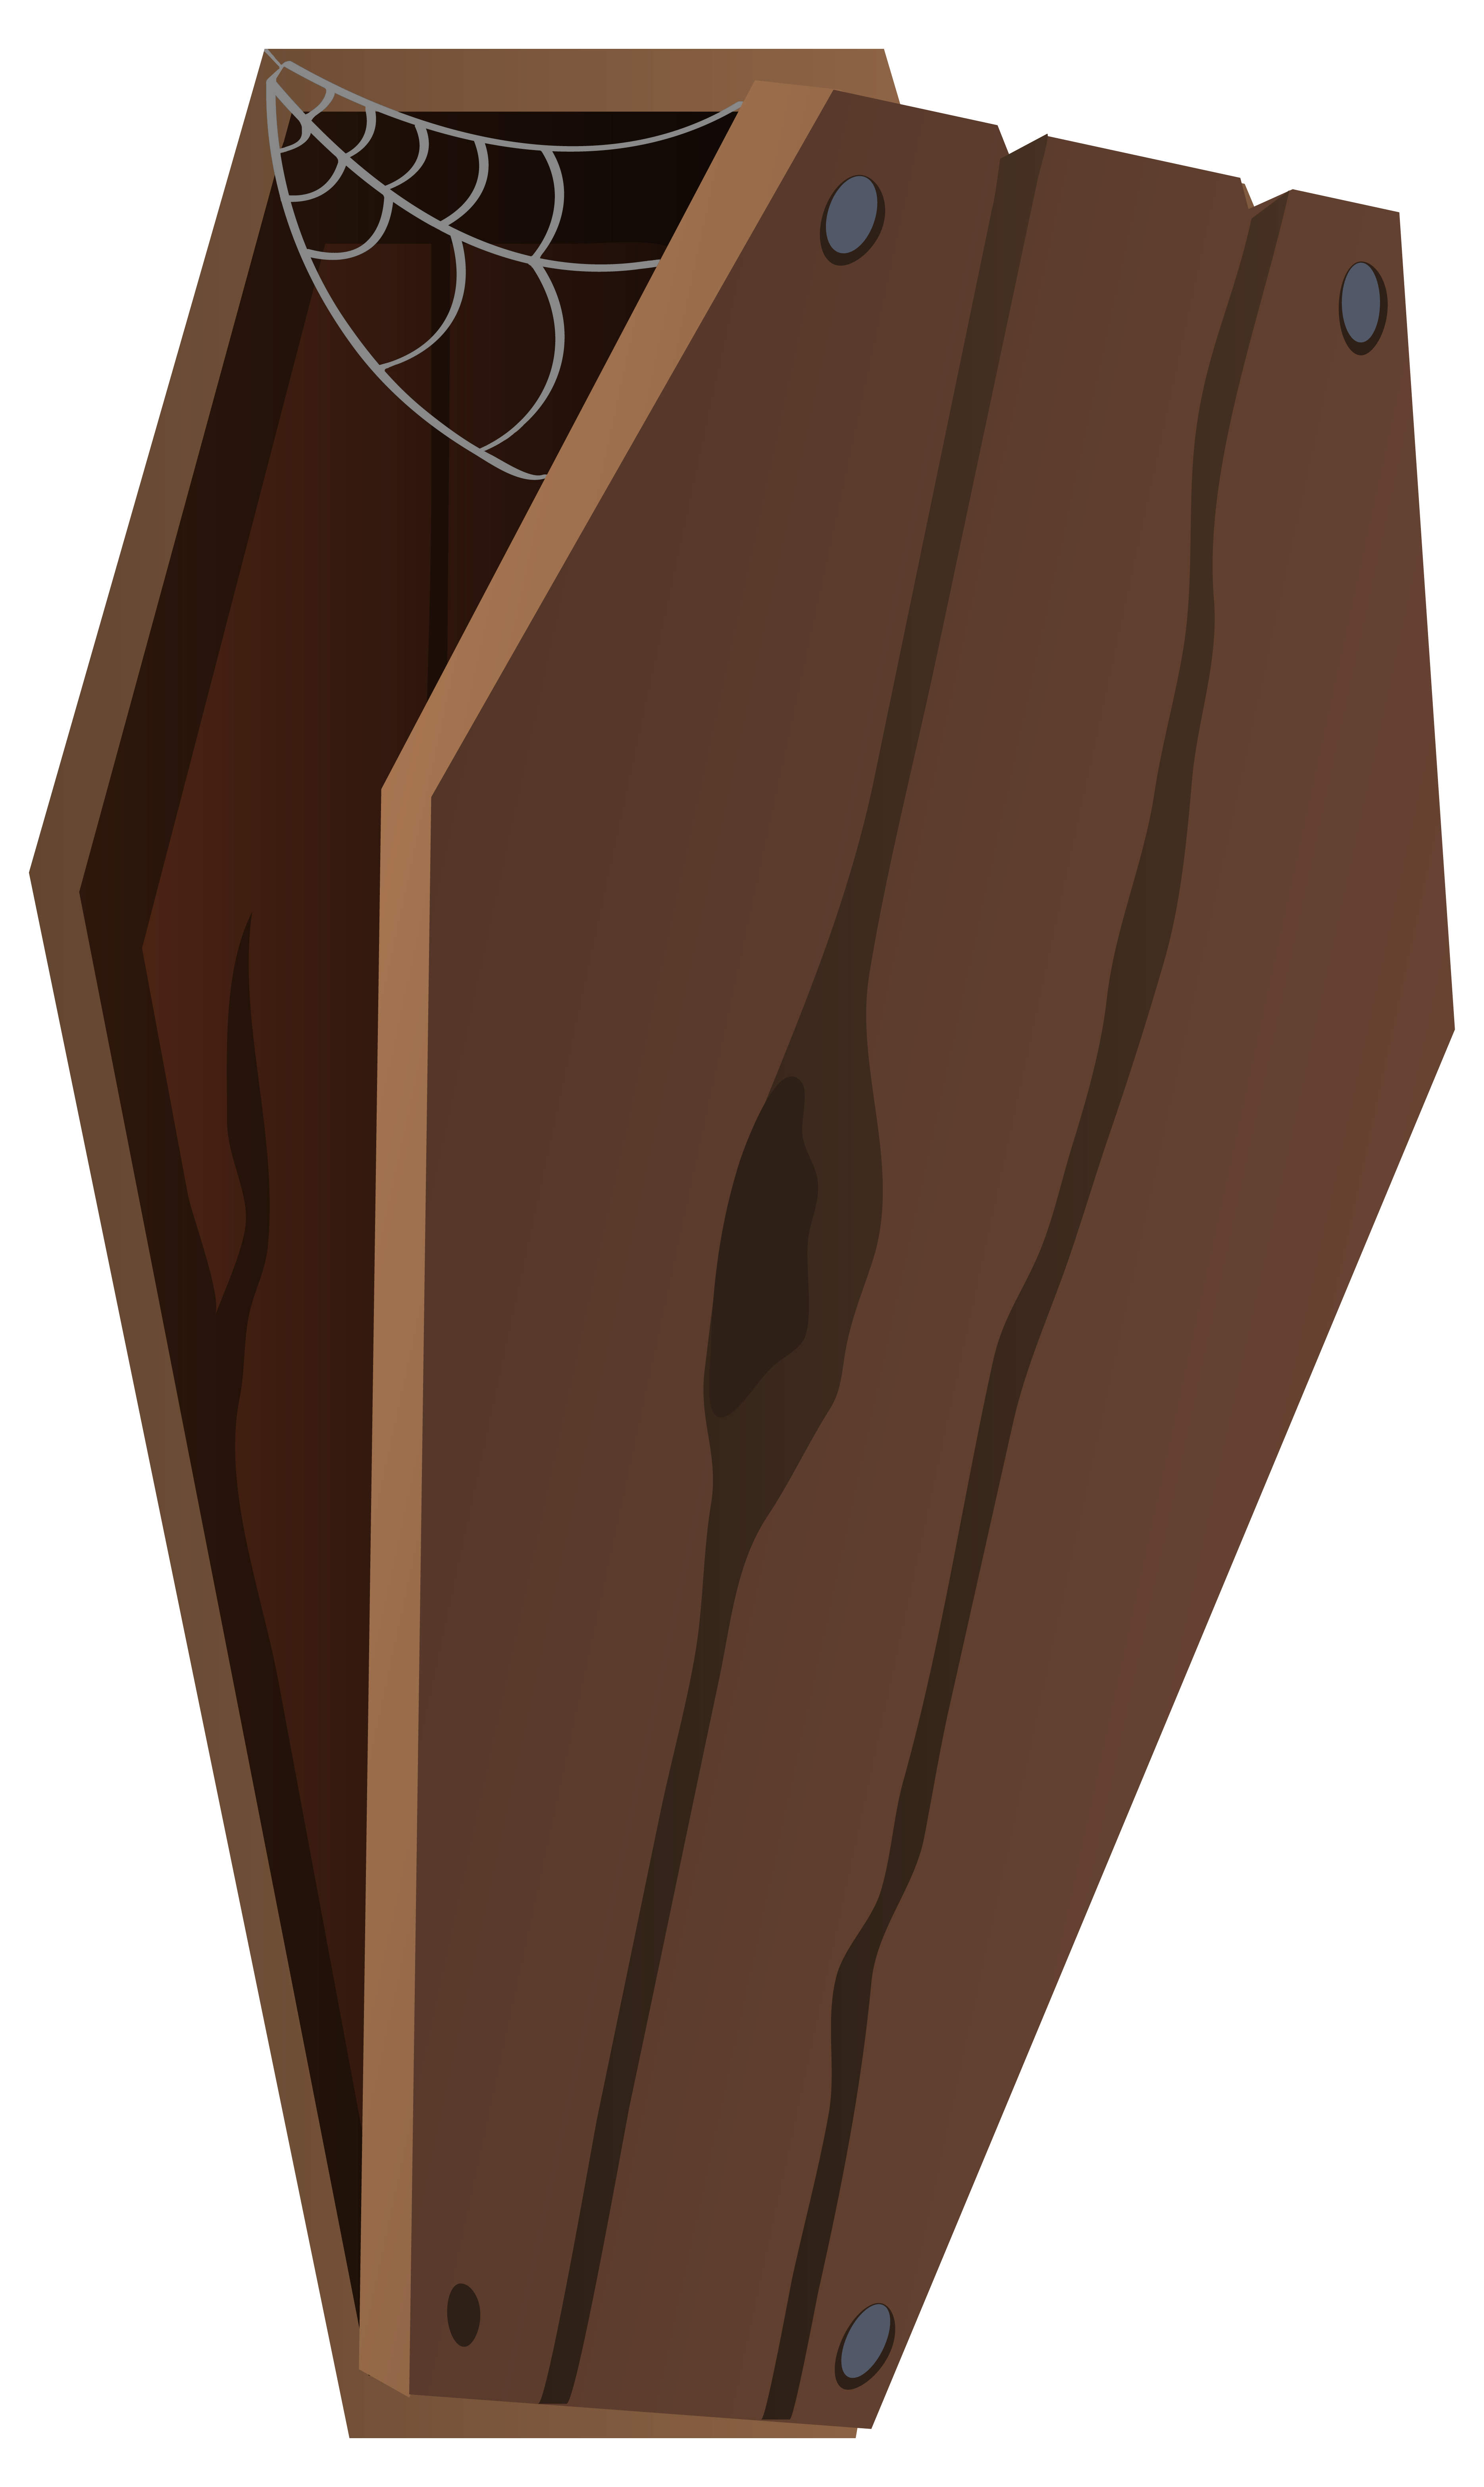 Coffin clipart png. Vertical image gallery yopriceville